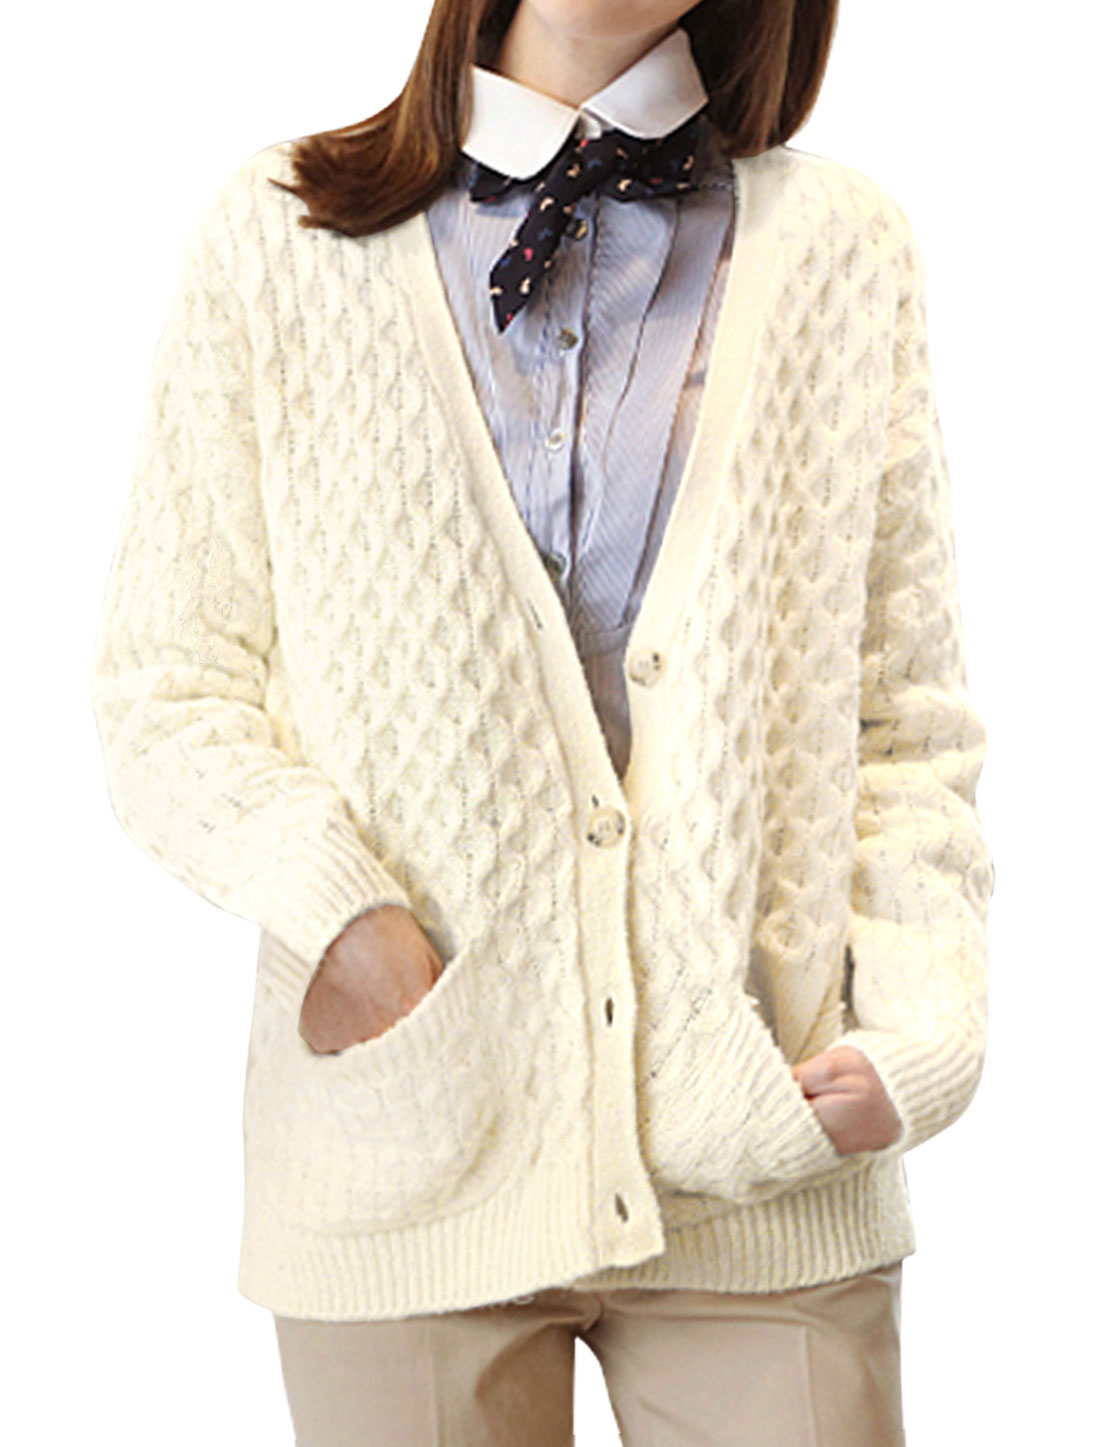 Ladies Long Sleeve Front Pockets High-Low Hem Button Closure Knit Cardigan Off White M